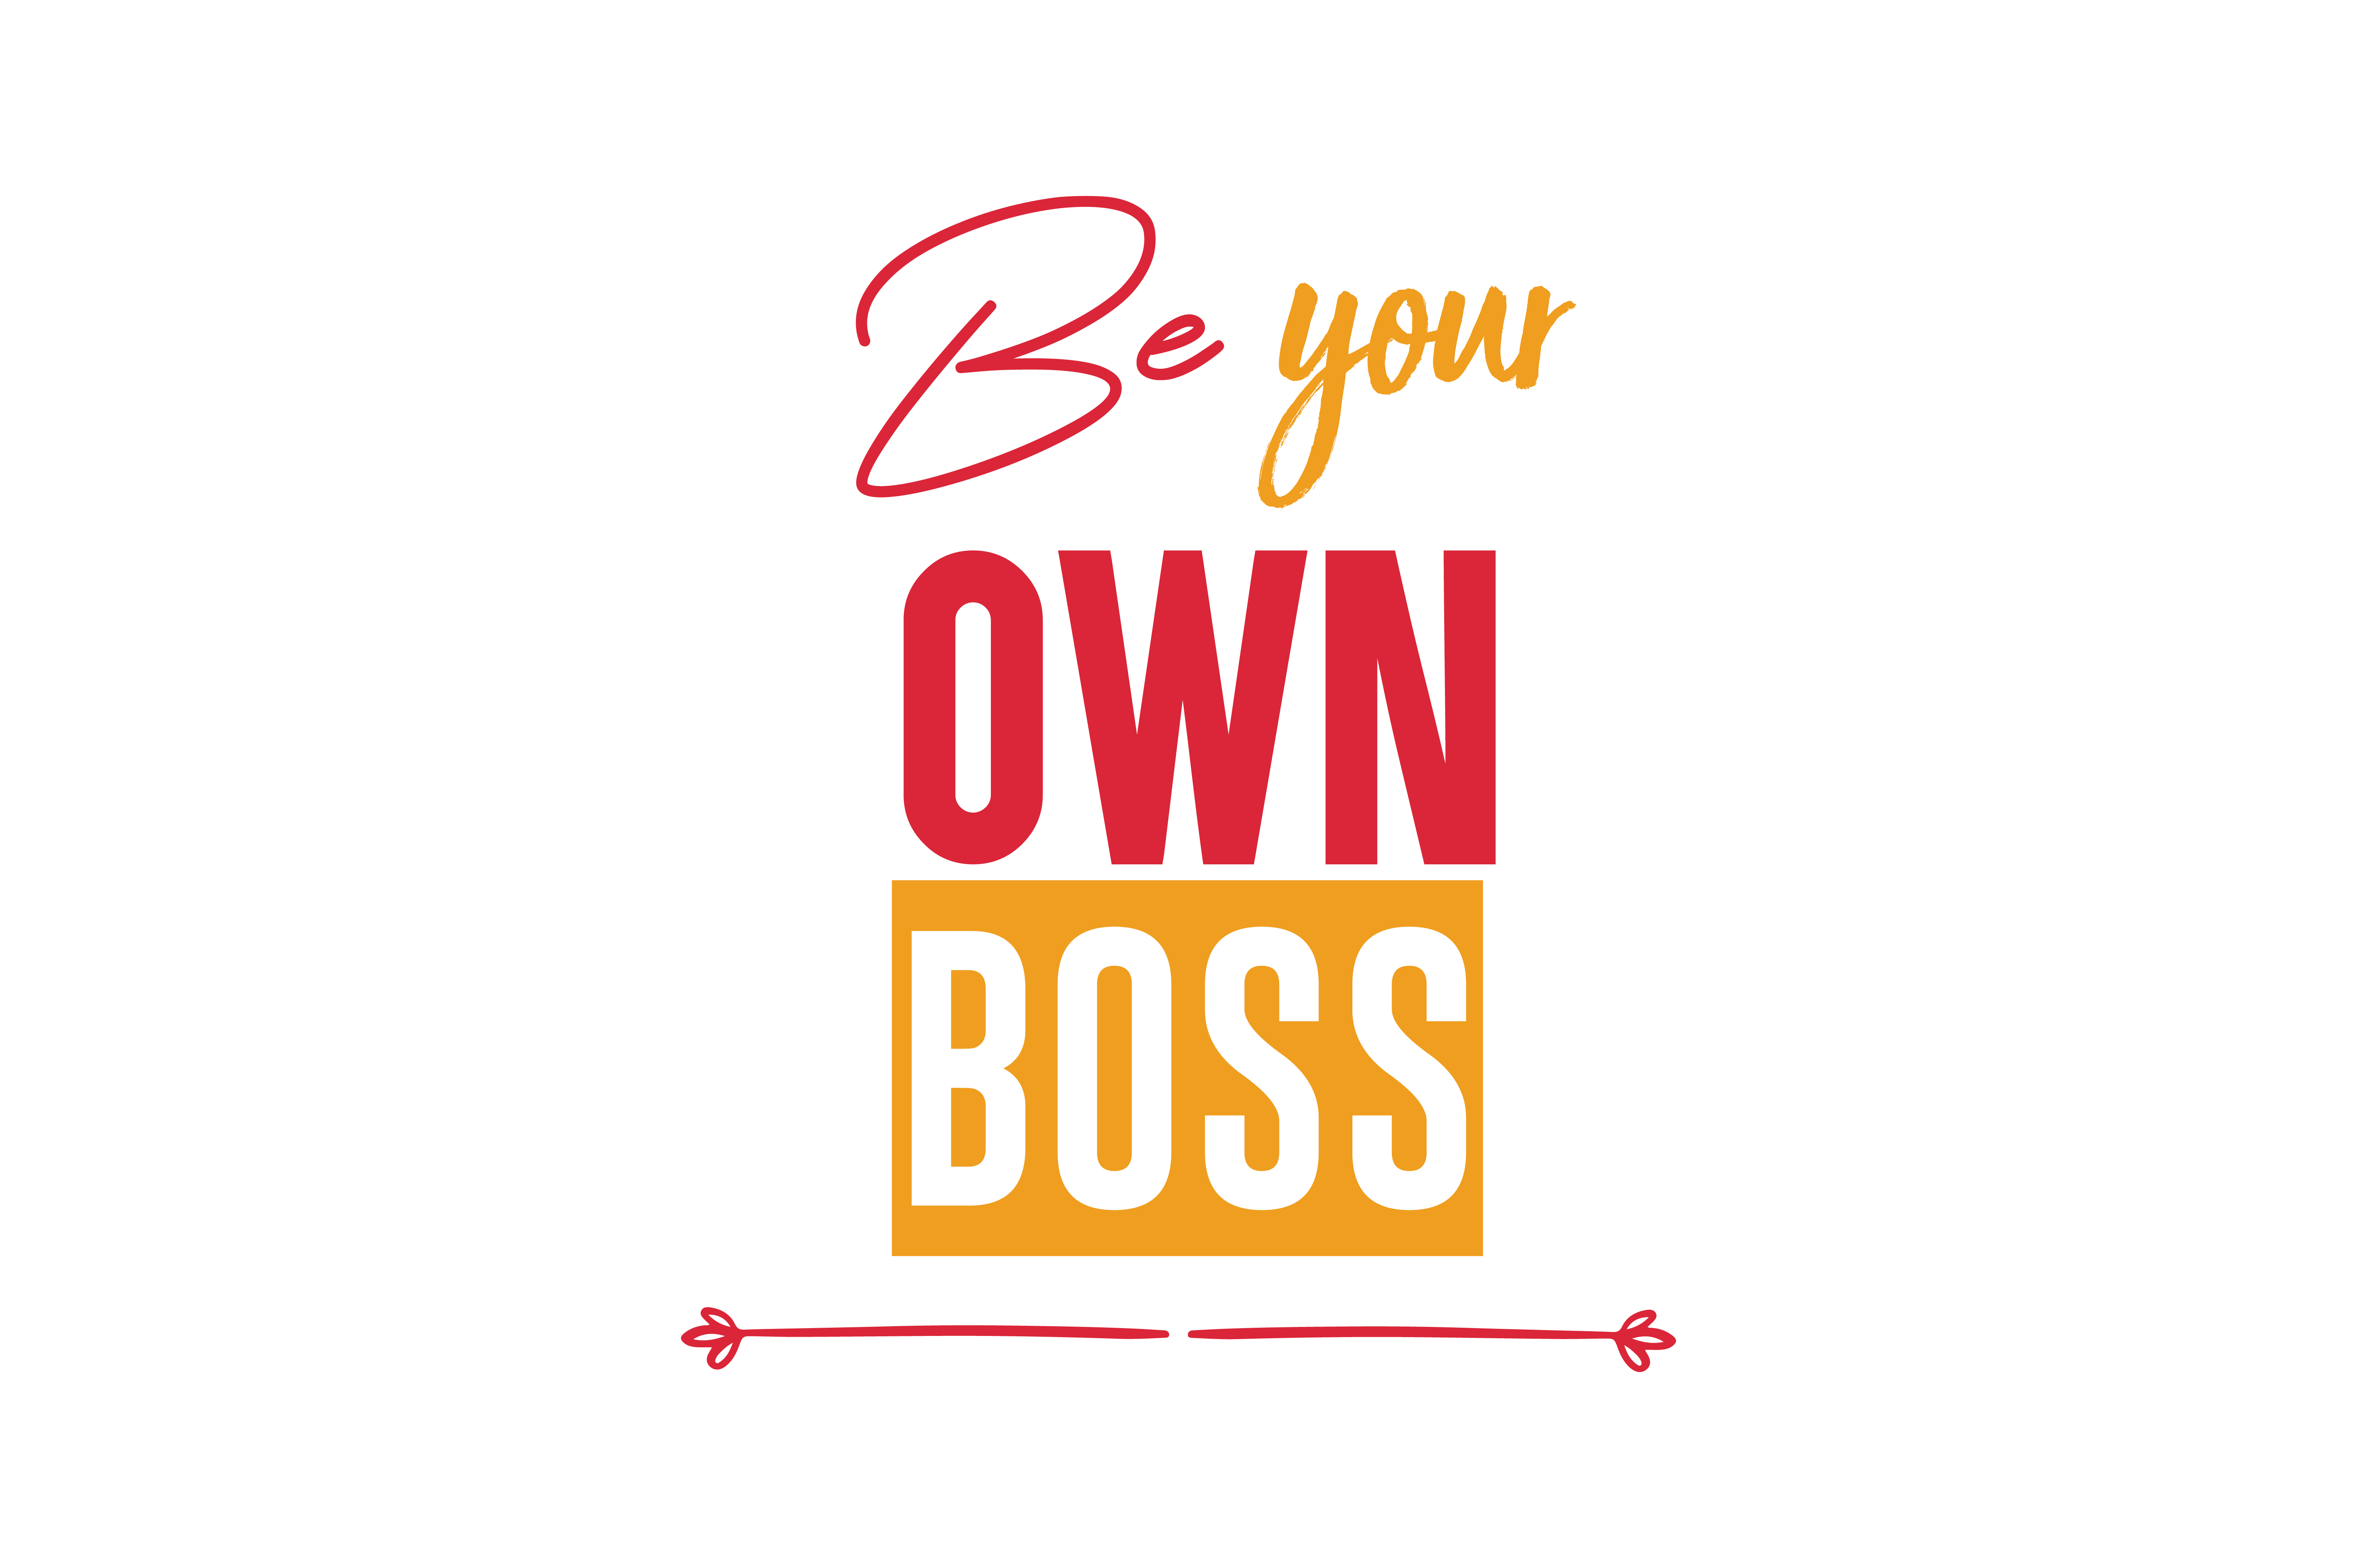 Be your own boss SVG Cut Quote.